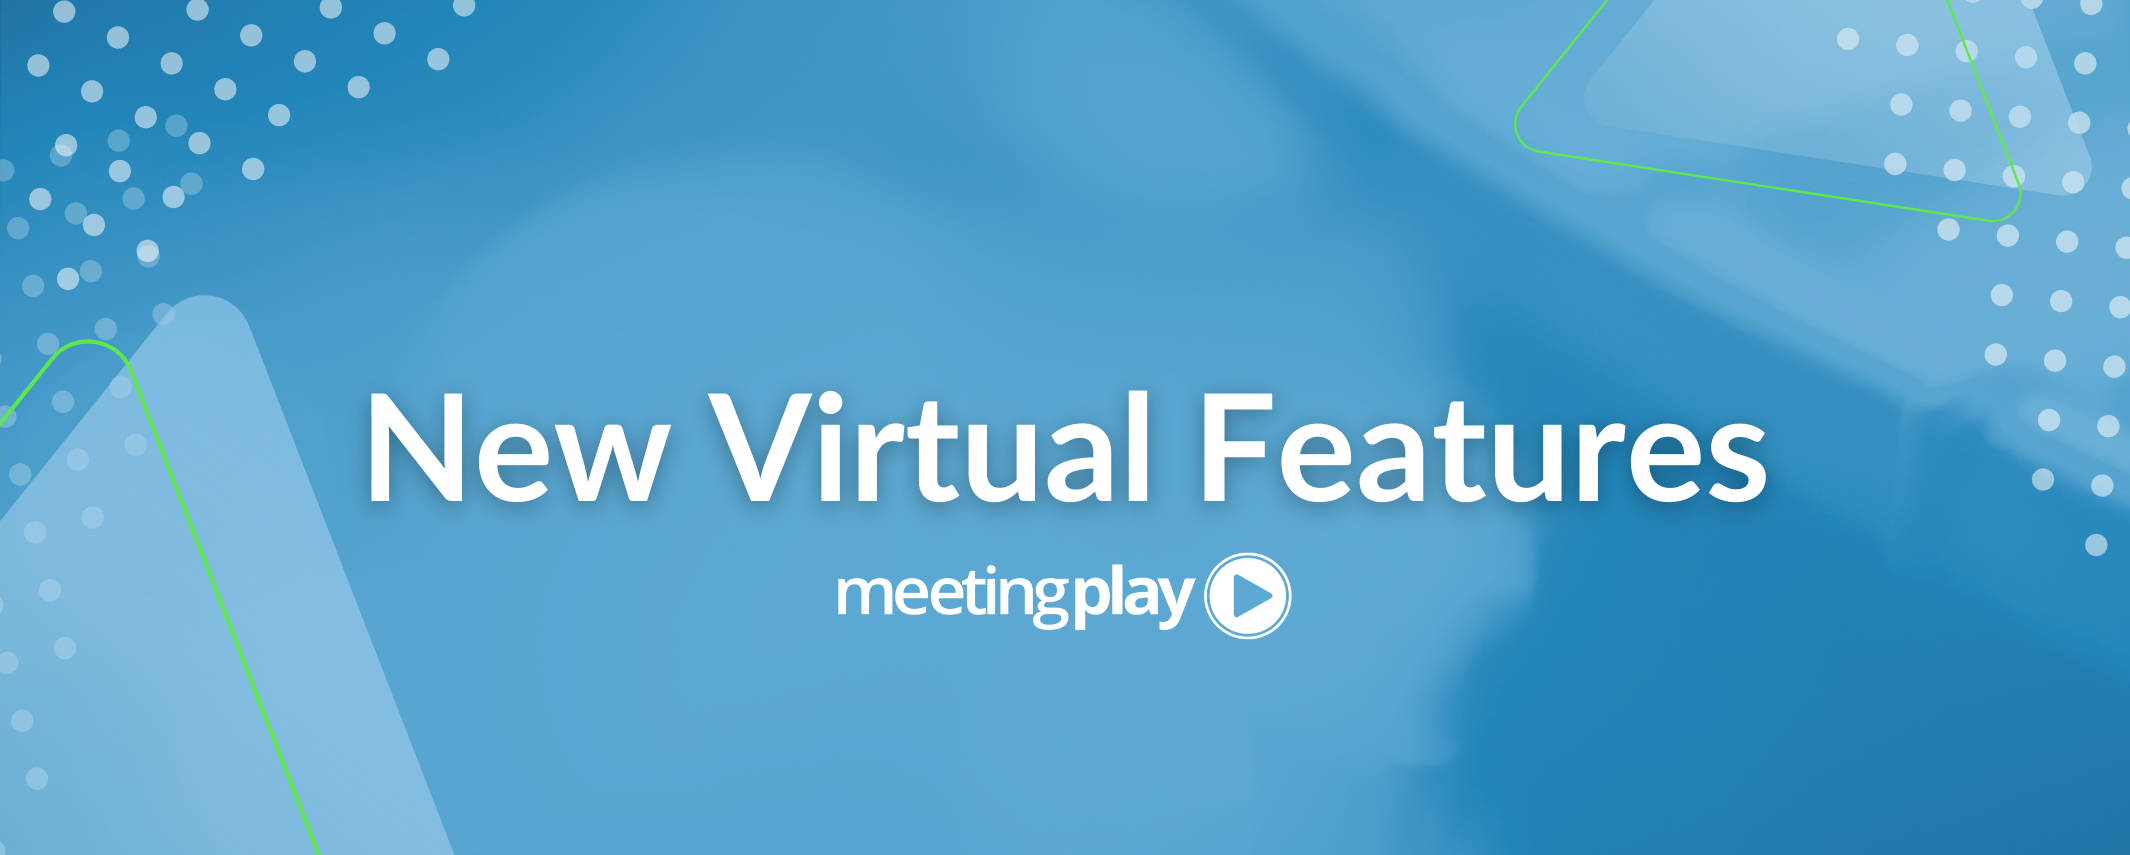 MeetingPlay's Newest Virtual Features